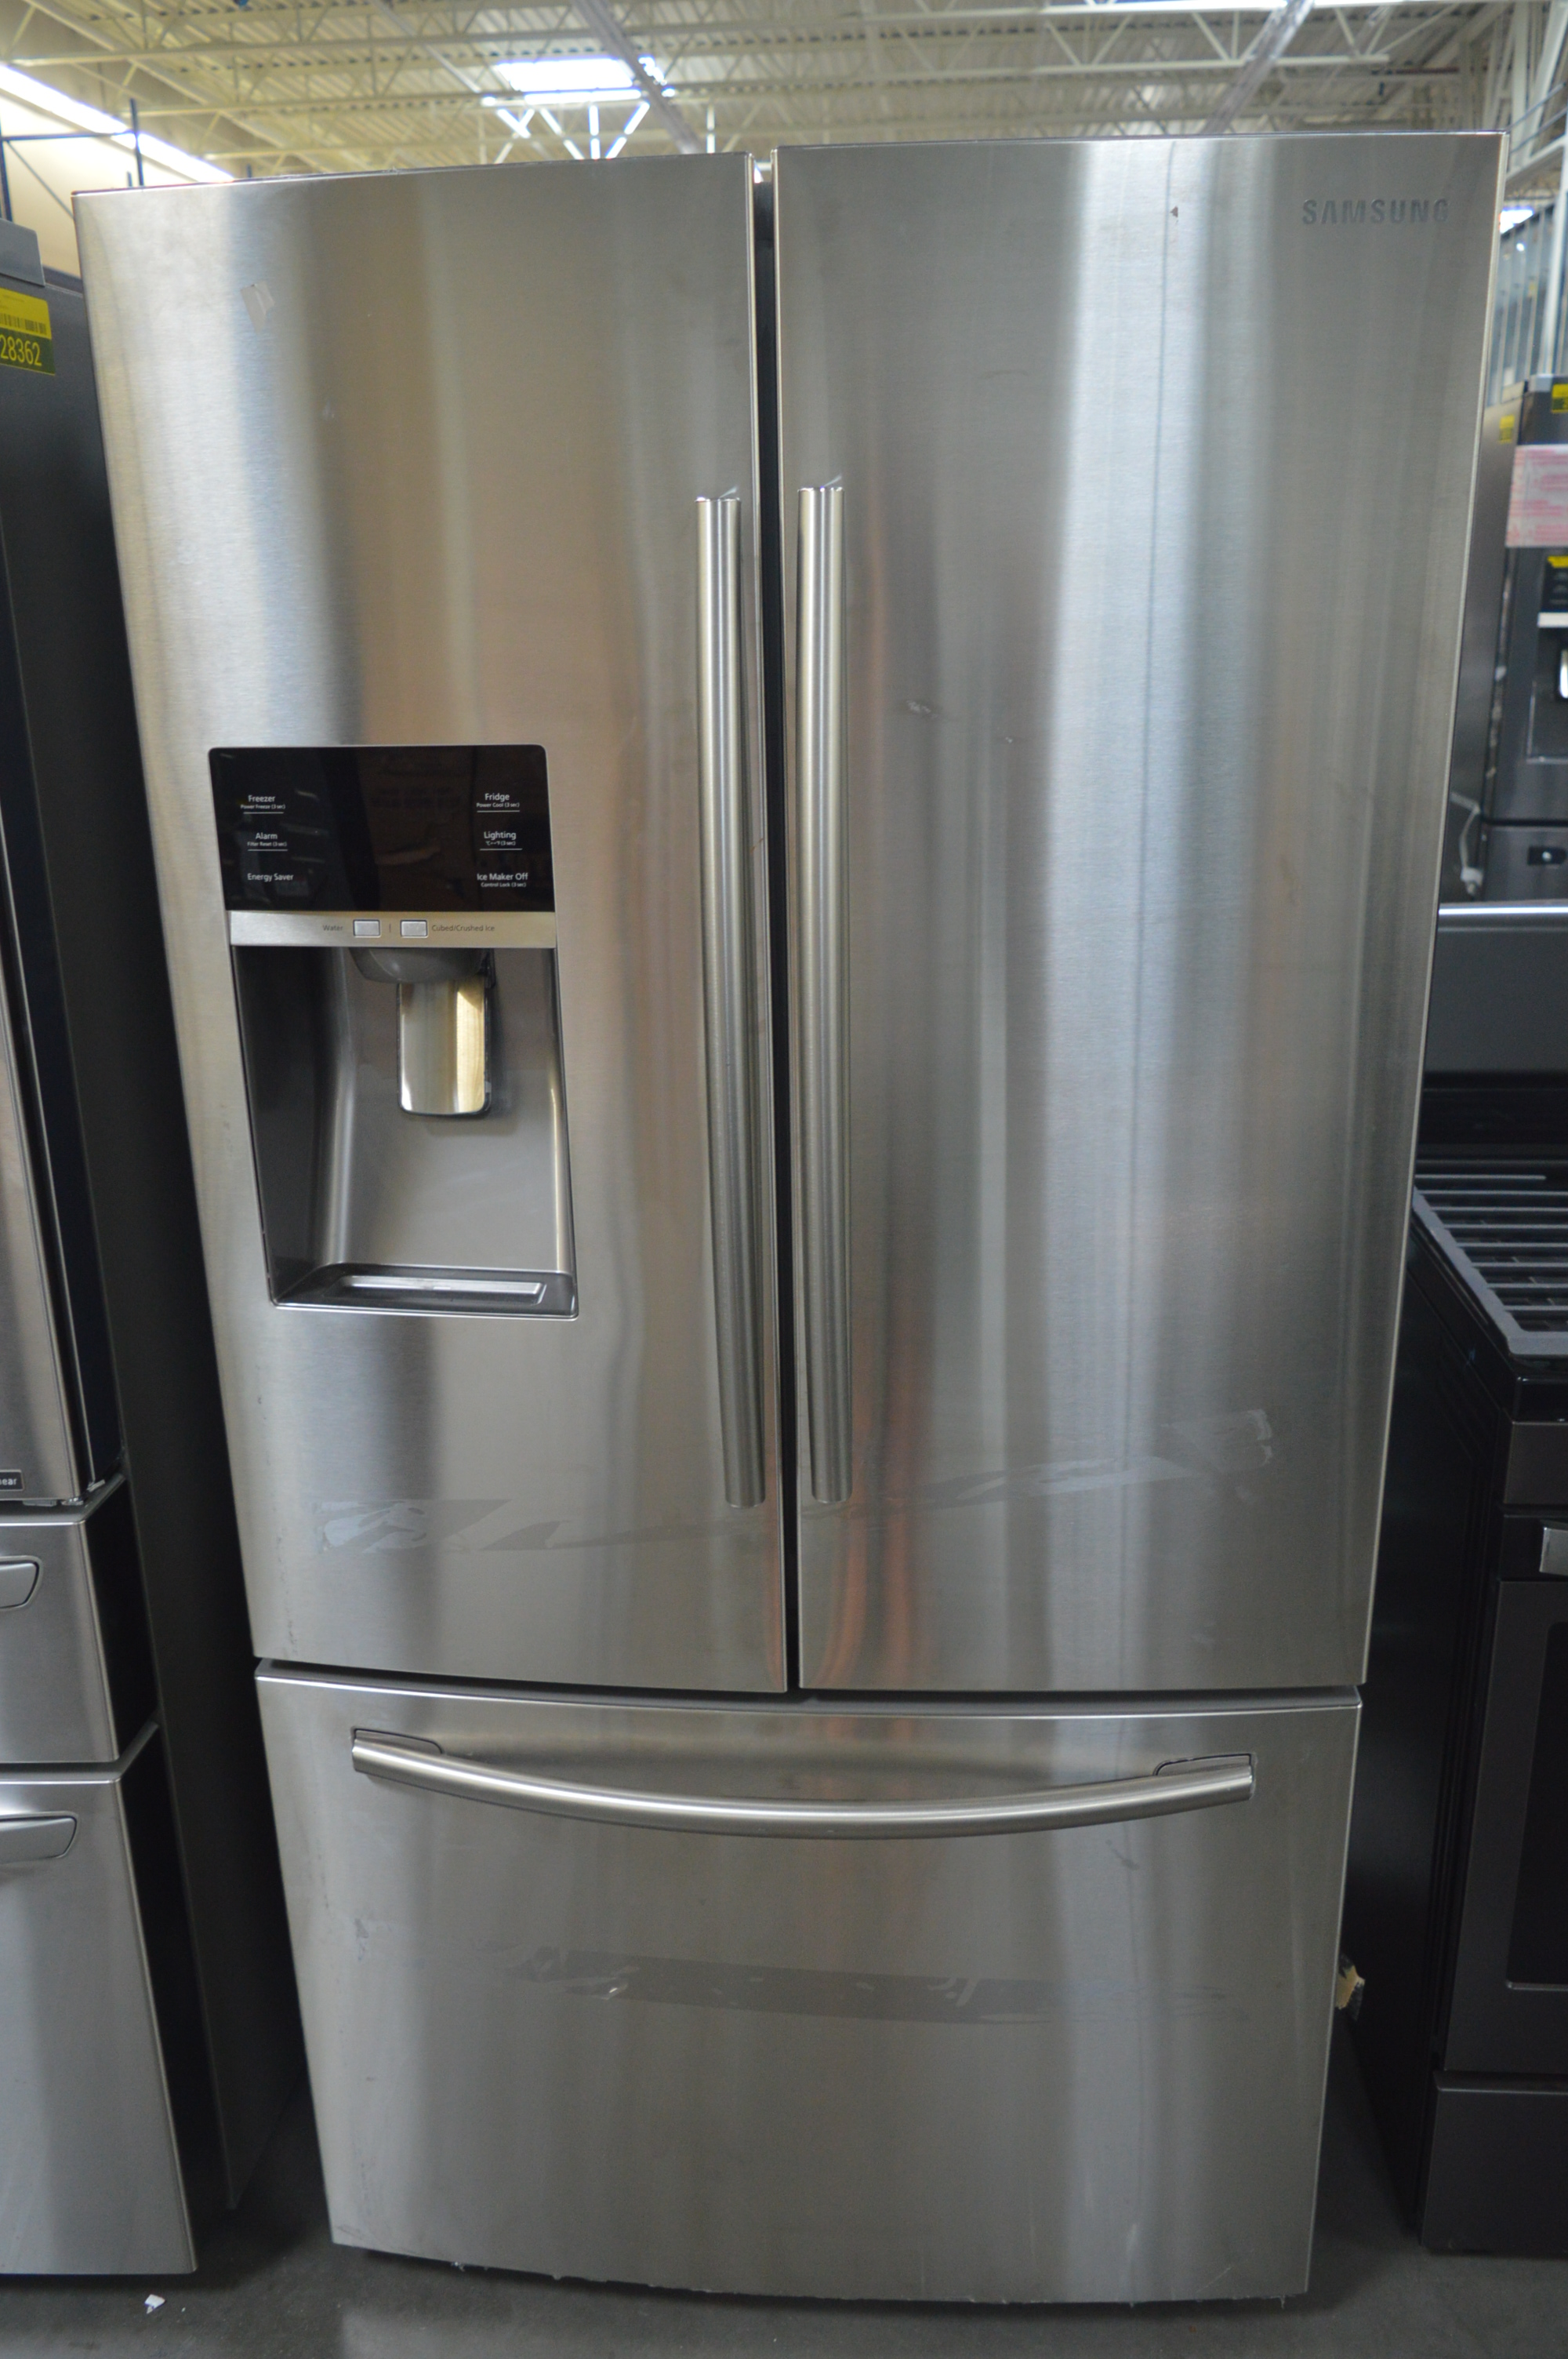 Samsung RF28HFEDTSR French Door Refrigerator Stainless